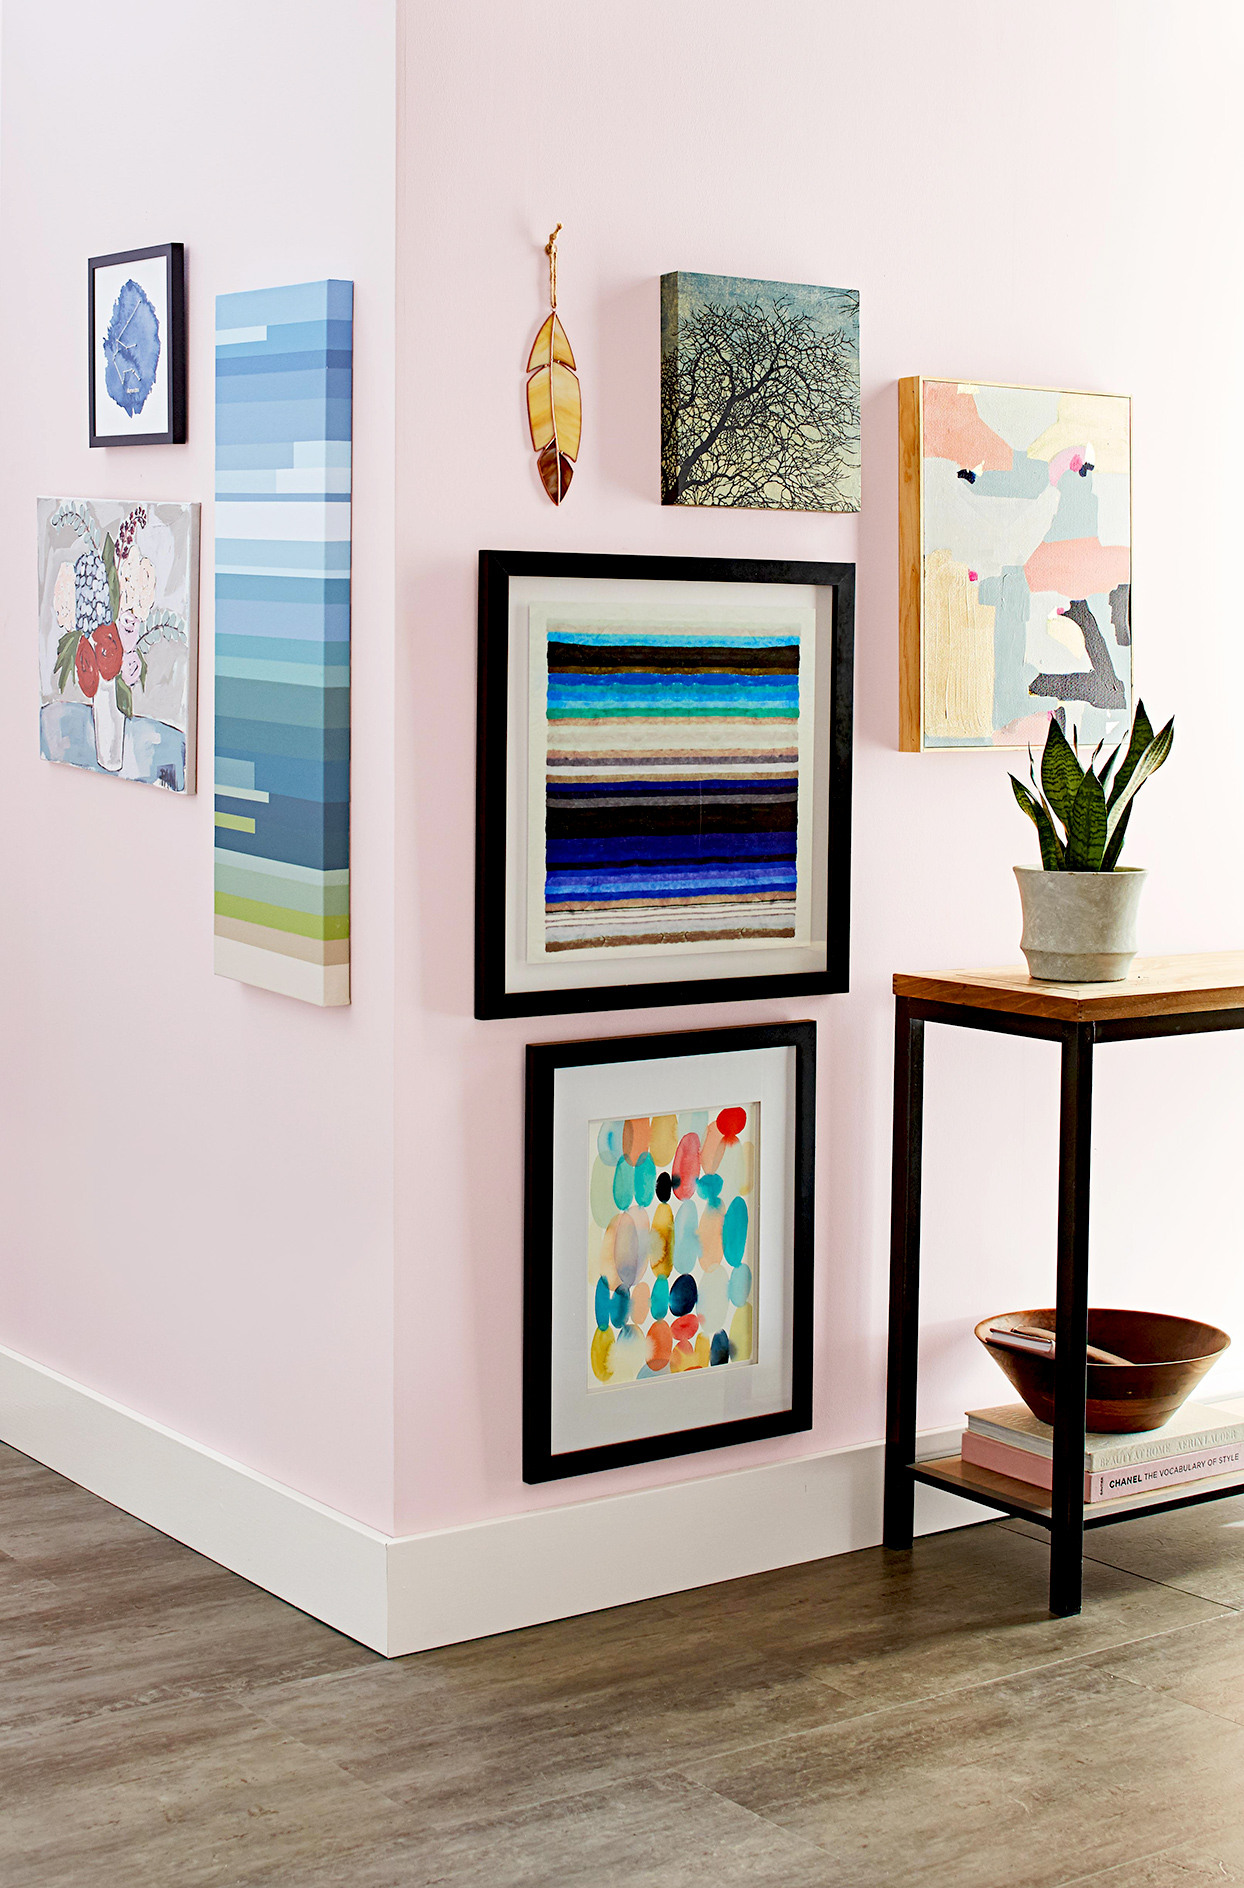 Corner of room with colorful artwork on walls